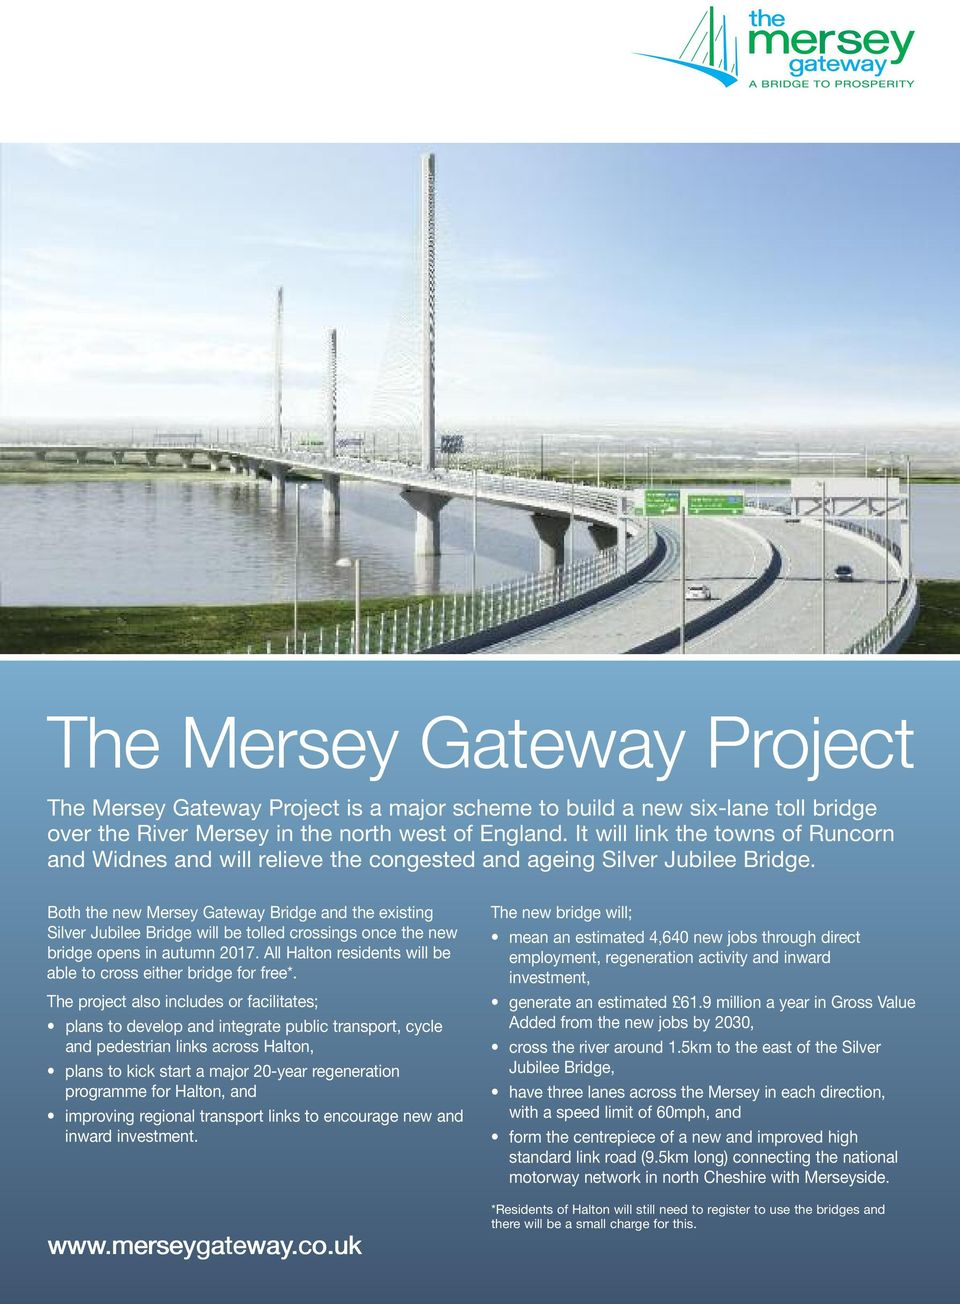 Both the new Mersey Gateway Bridge and the existing Silver Jubilee Bridge will be tolled crossings once the new bridge opens in autumn 2017.